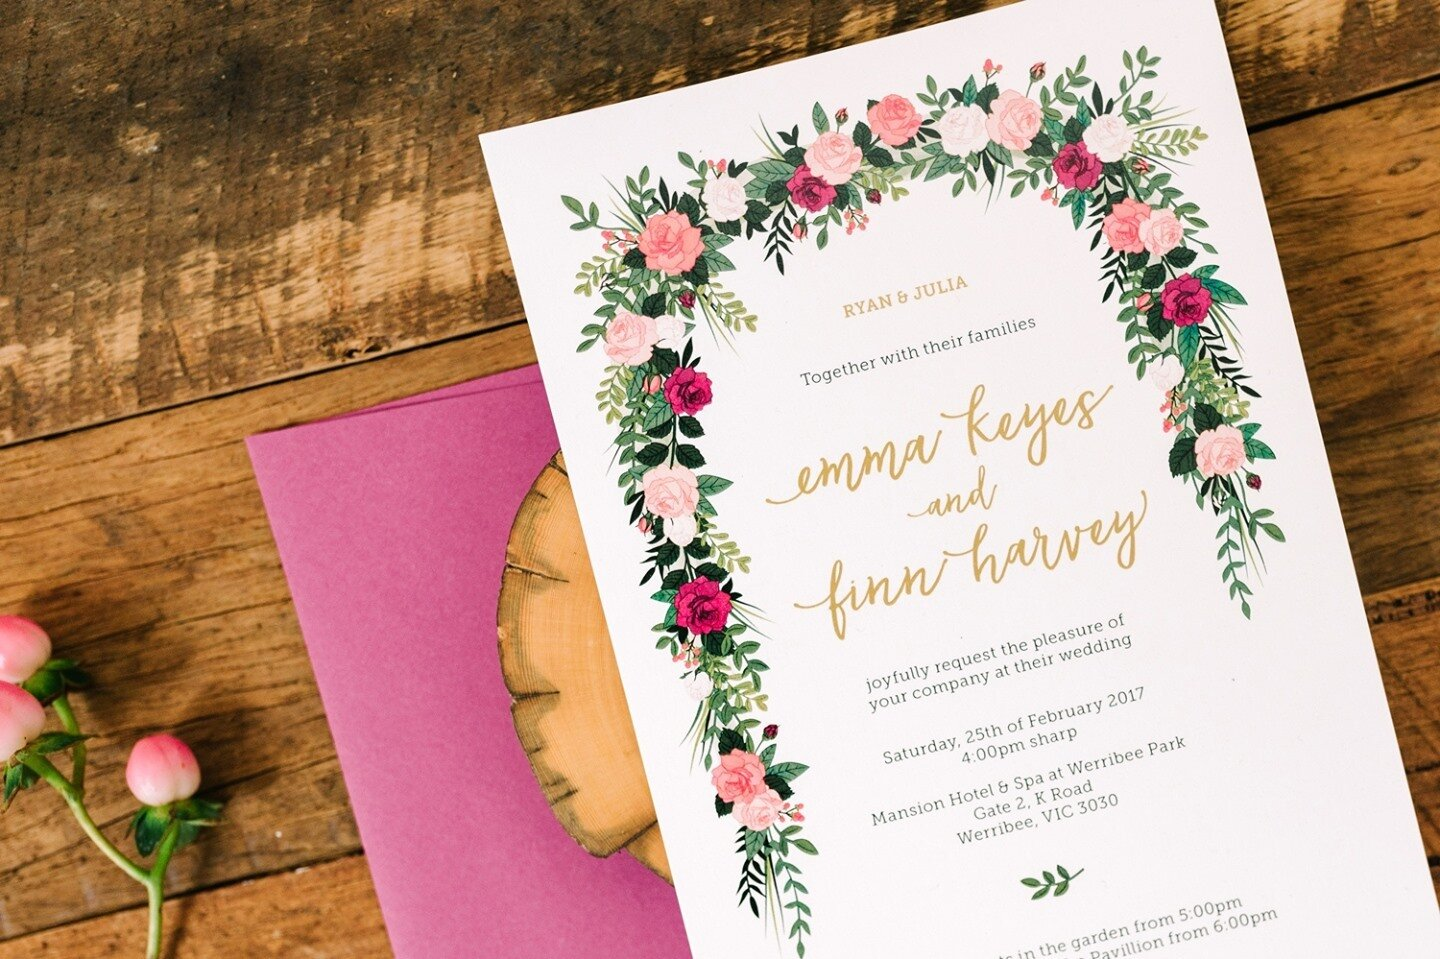 Your Covid 19 Wedding Postponement Stationery Wording Guide Love Carli Wedding Stationery Signage Pretty Paper Goods